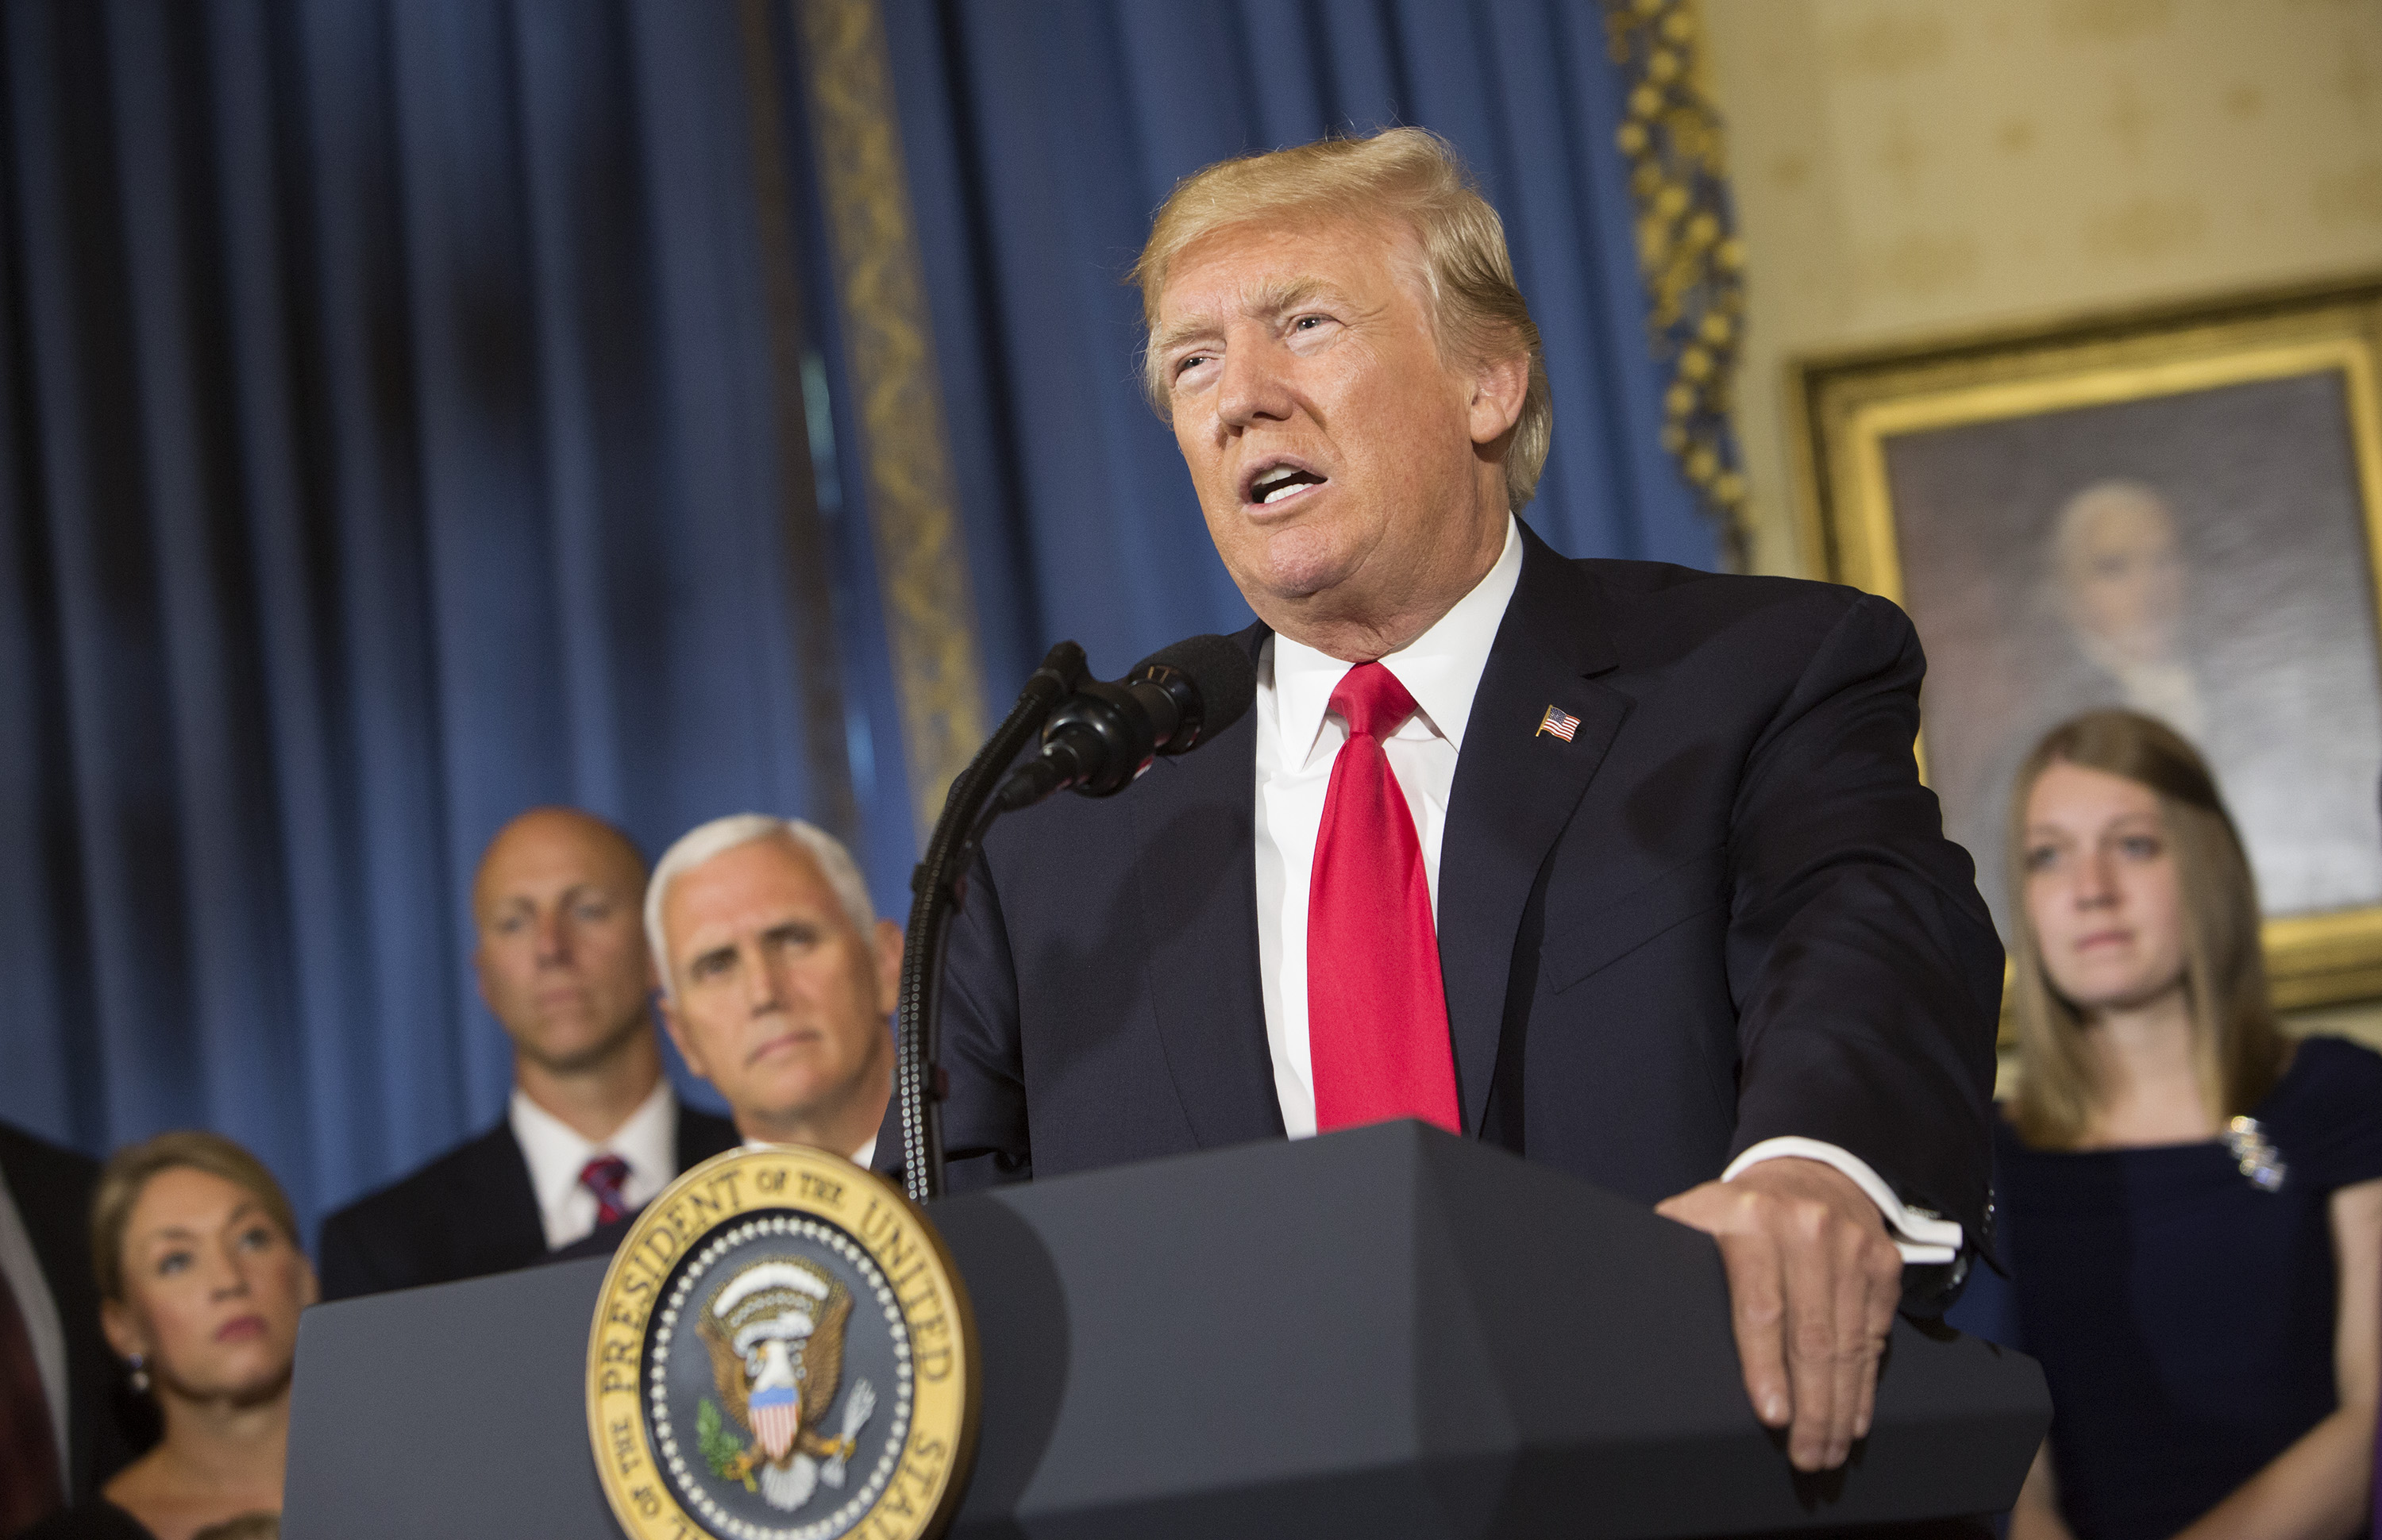 """U.S. President Donald Trump makes a statement on health care while standing with """"victims of Obamacare"""" at The White House on July 24, 2017 in Washington, DC."""